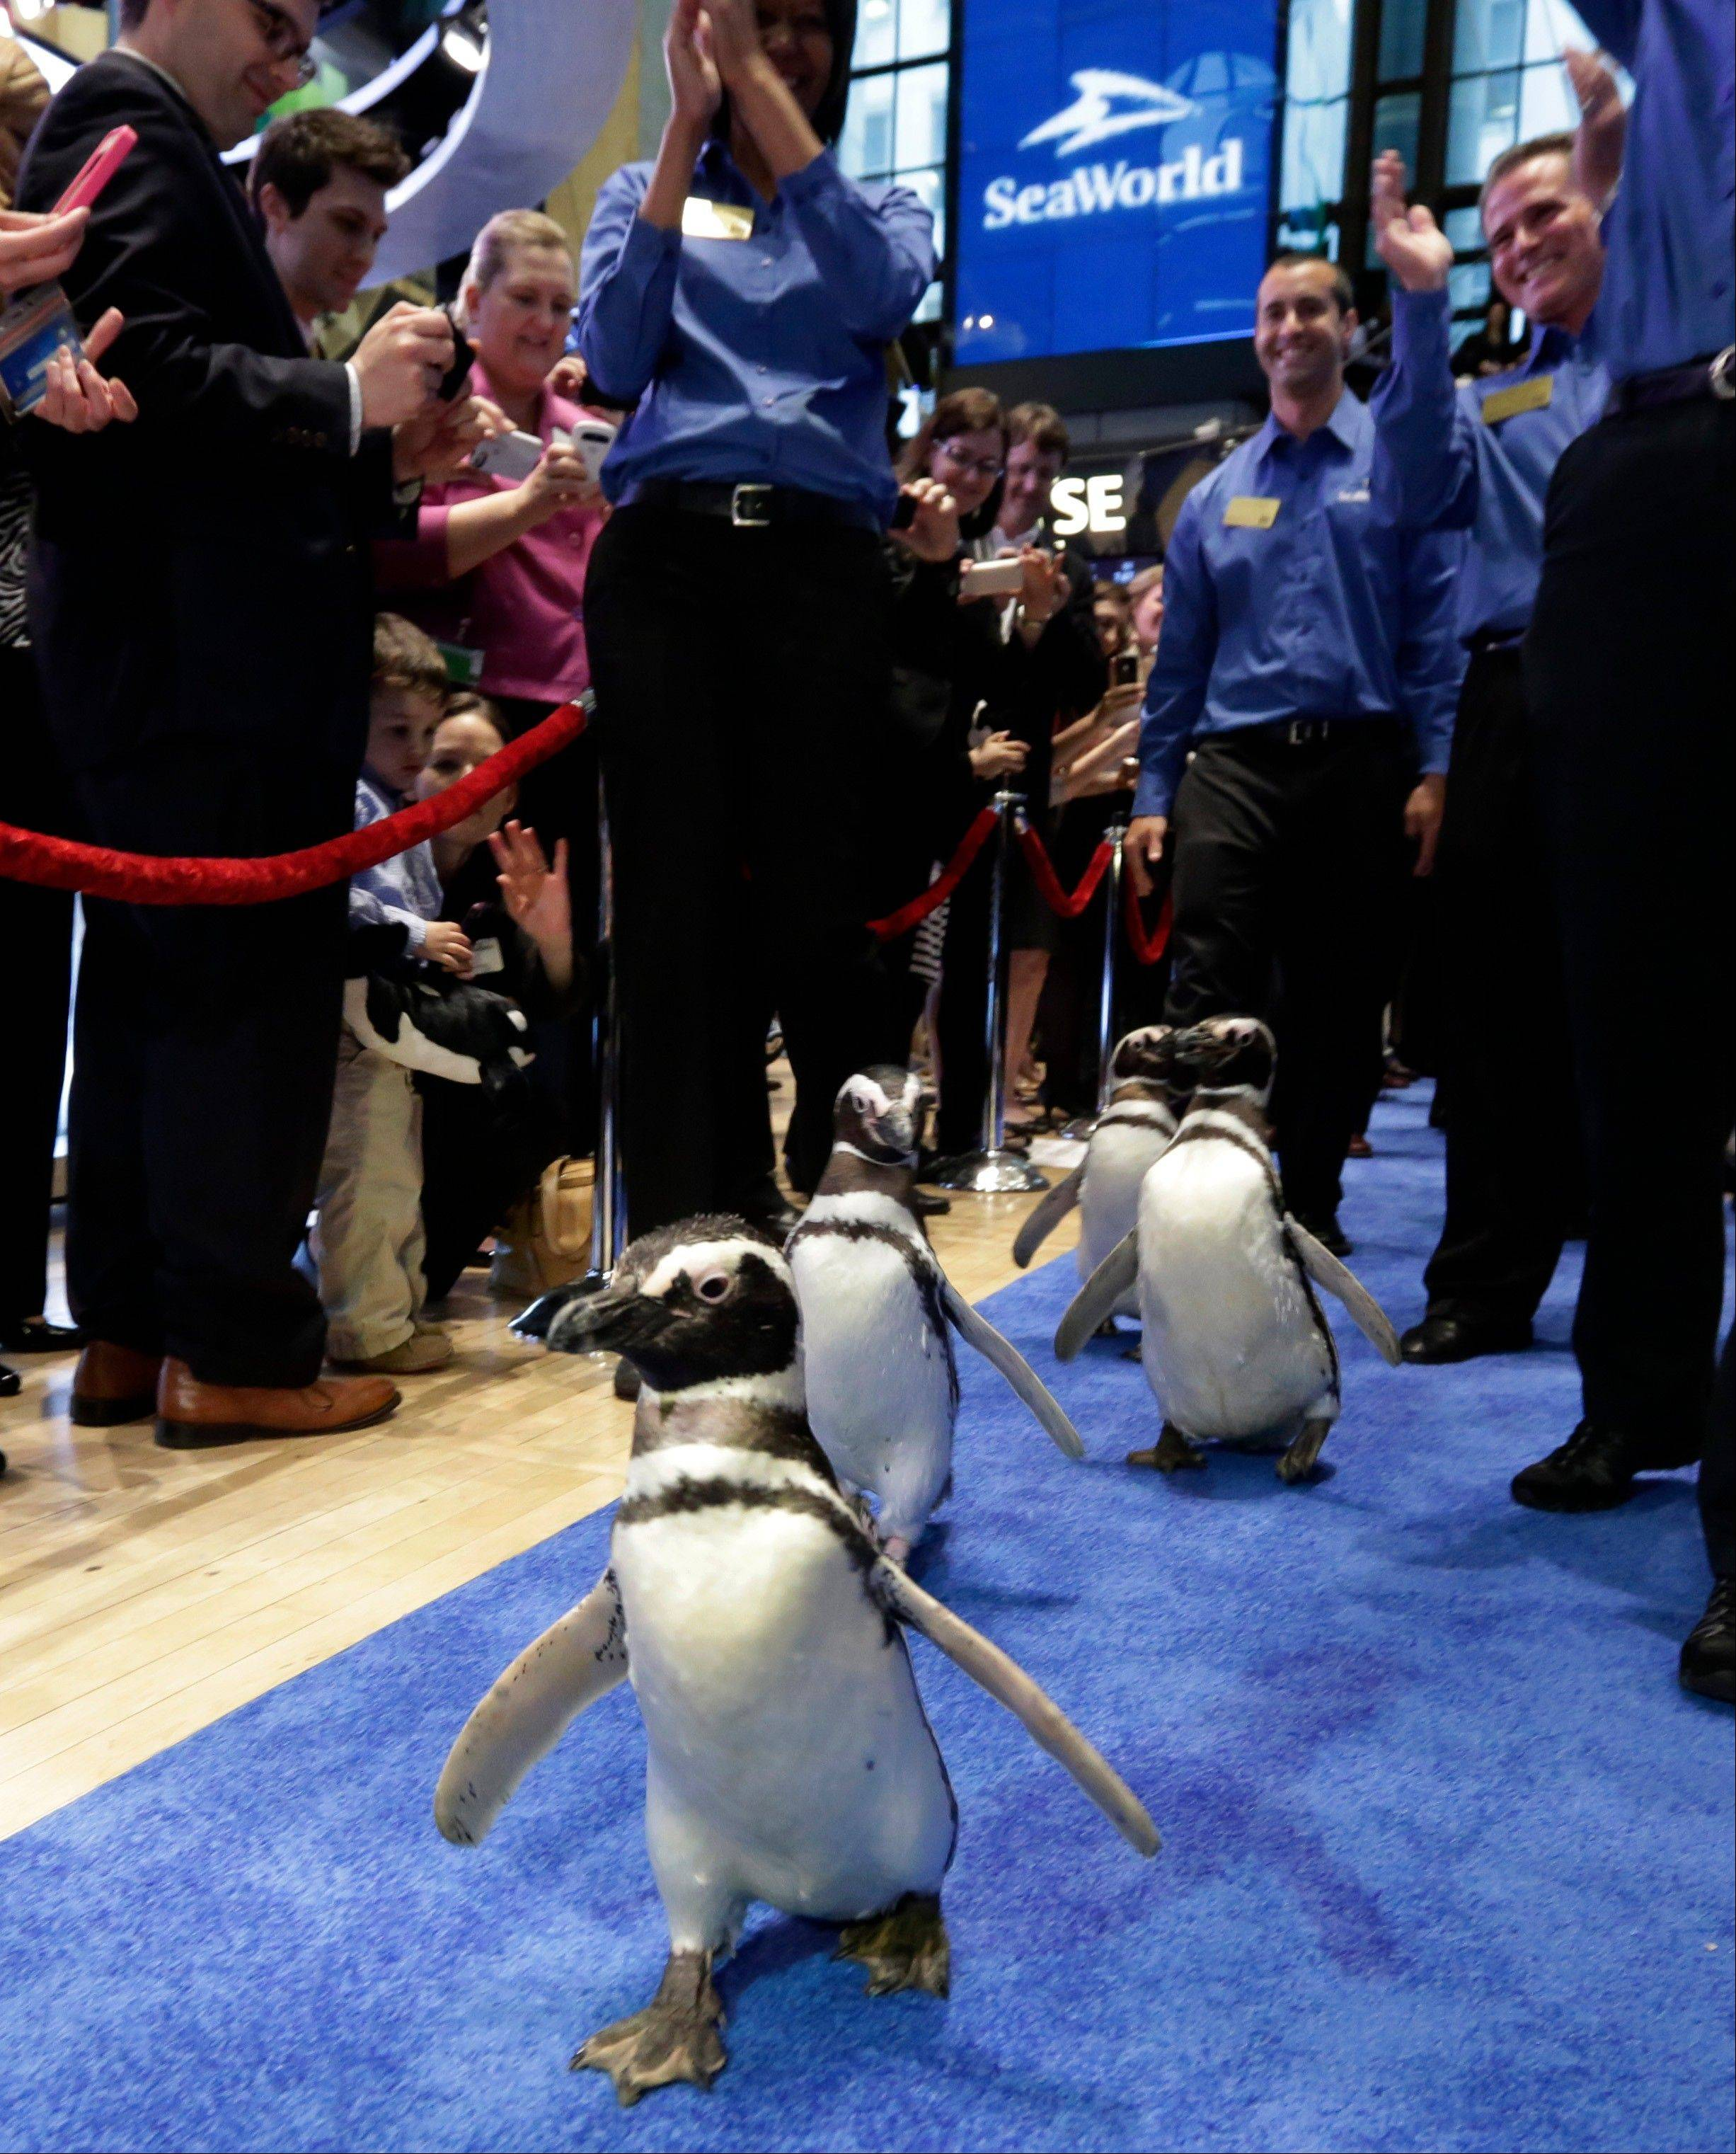 Penguins from SeaWorld are escorted Friday by their handlers on the floor of the New York Stock Exchange during the company's IPO.